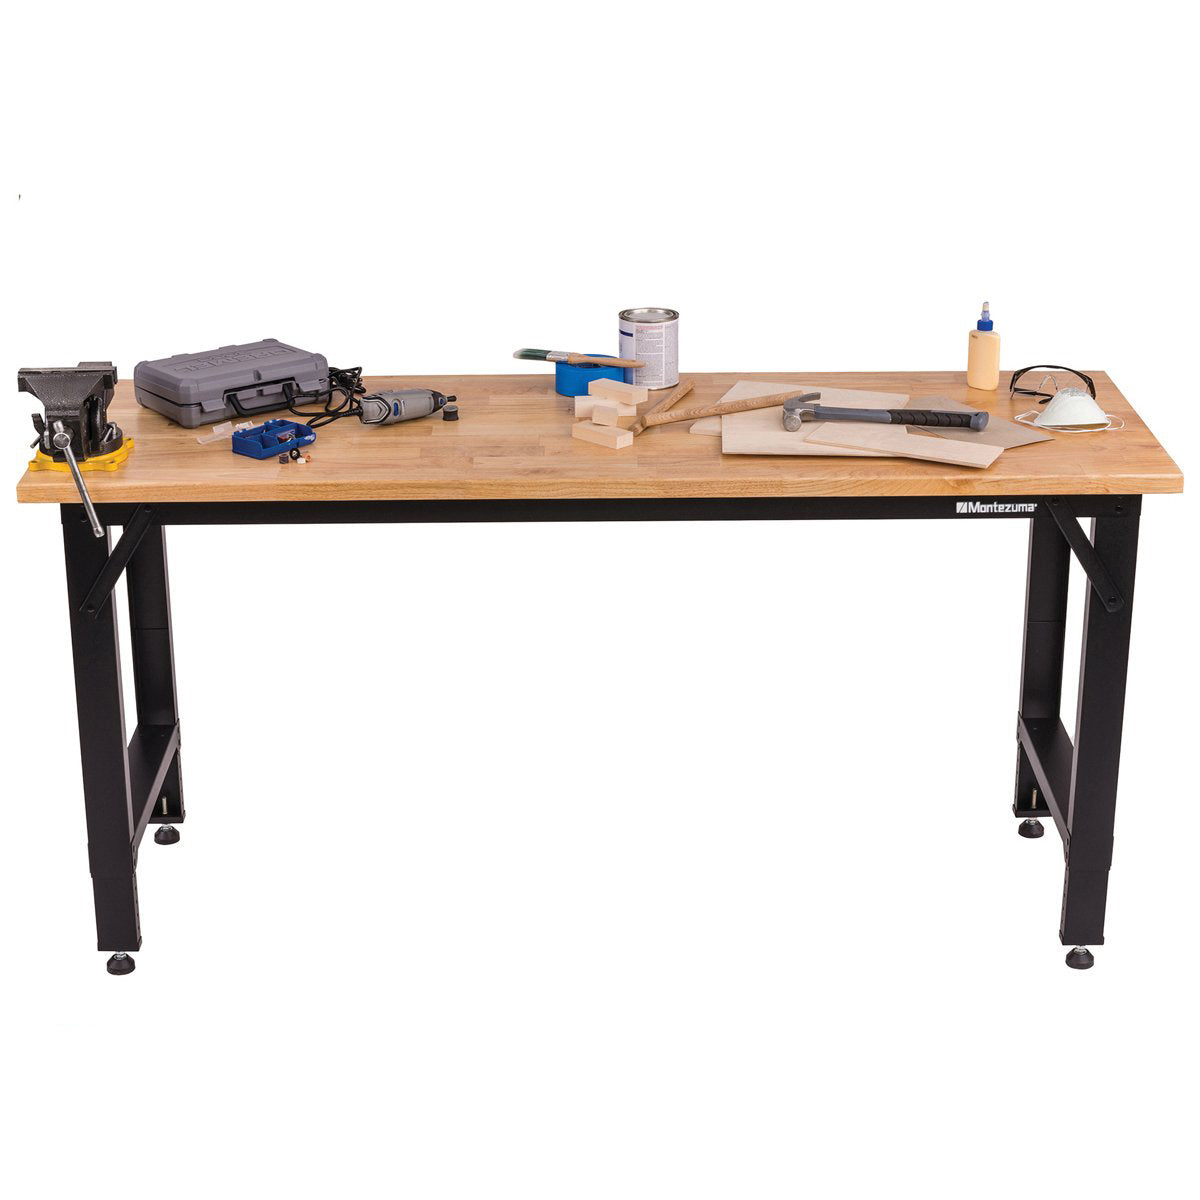 6 FT. ADJUSTABLE HEIGHT STEEL WORKBENCH WITH SOLID WOOD WORK TOP